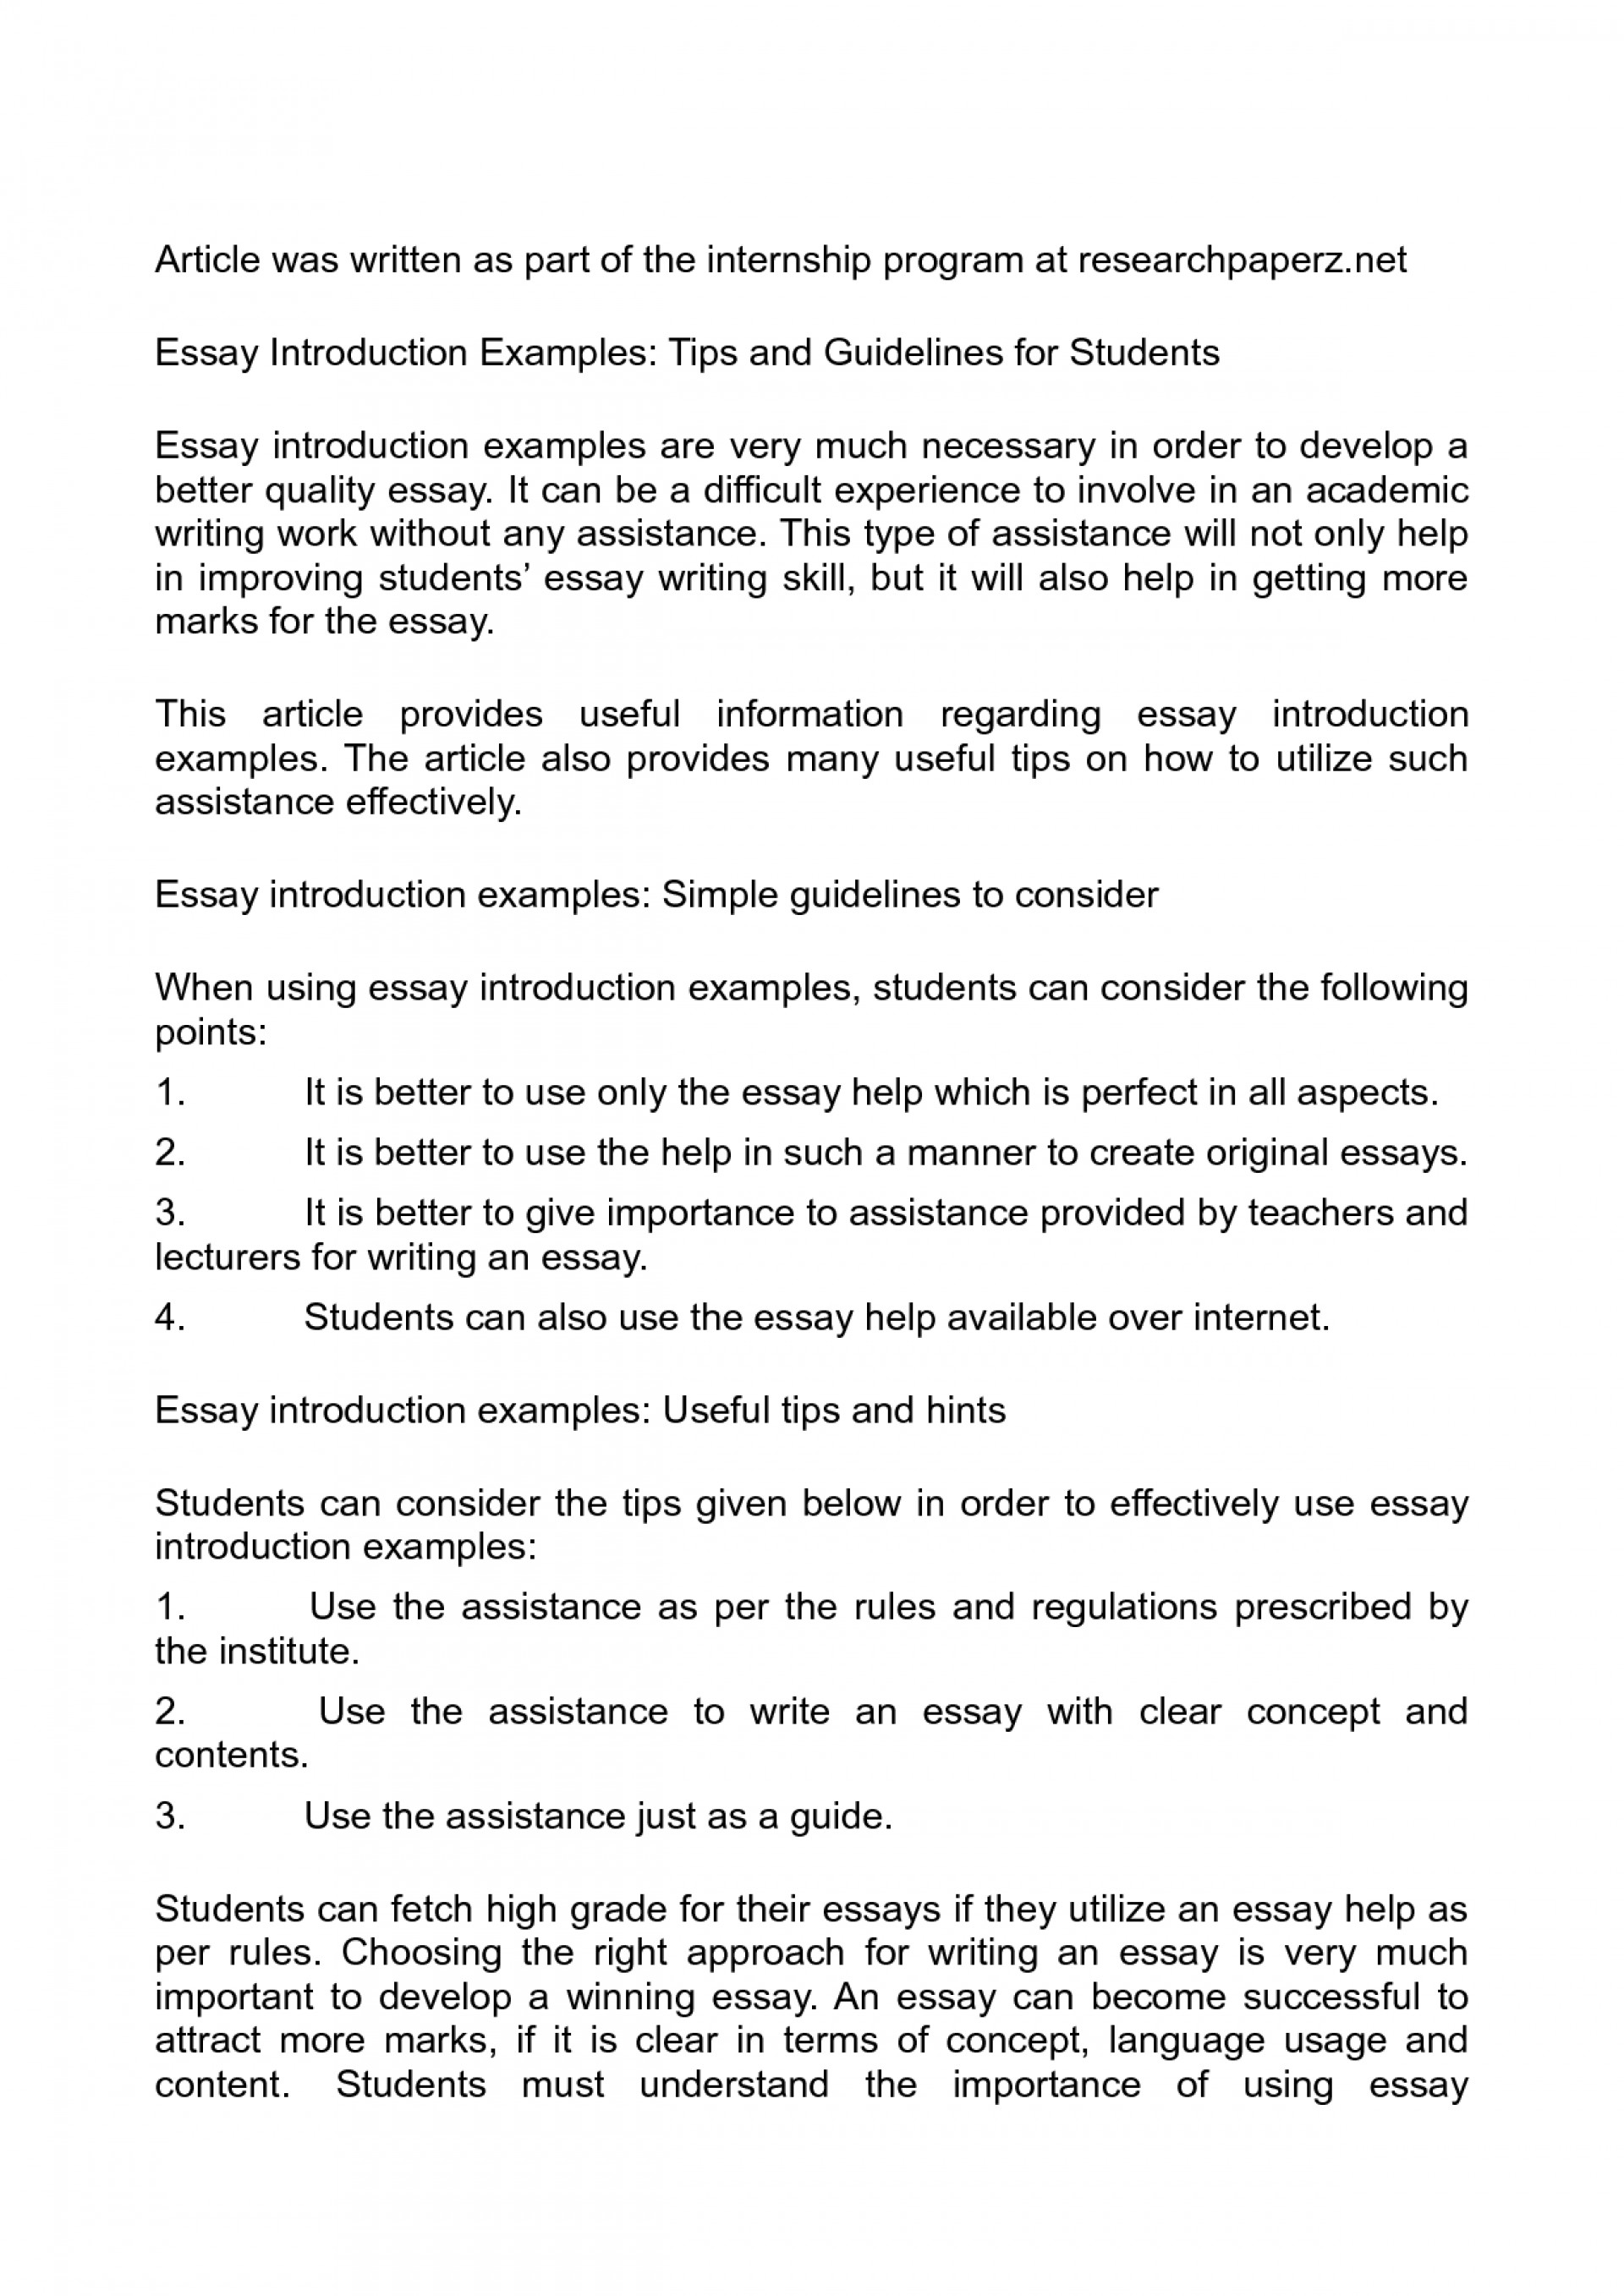 016 Concept Essays Eyx5t6okob Stunning Essay Examples Topic Paper 1920